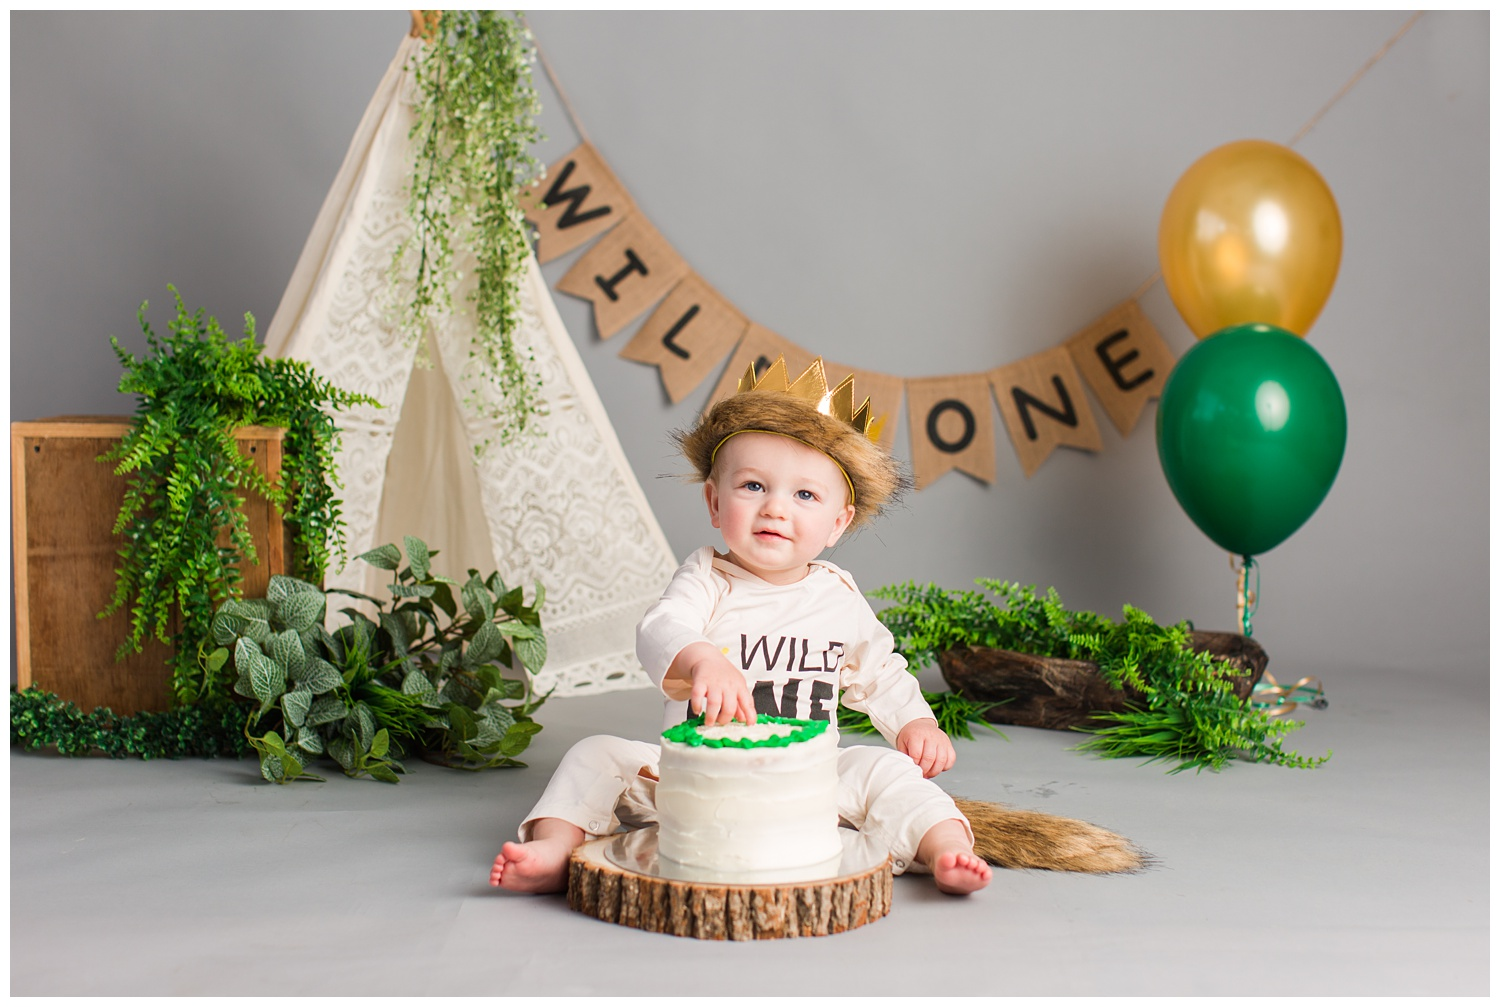 Baby Cullen poses for Where The Wild Things Are themed cake smash photoshoot.